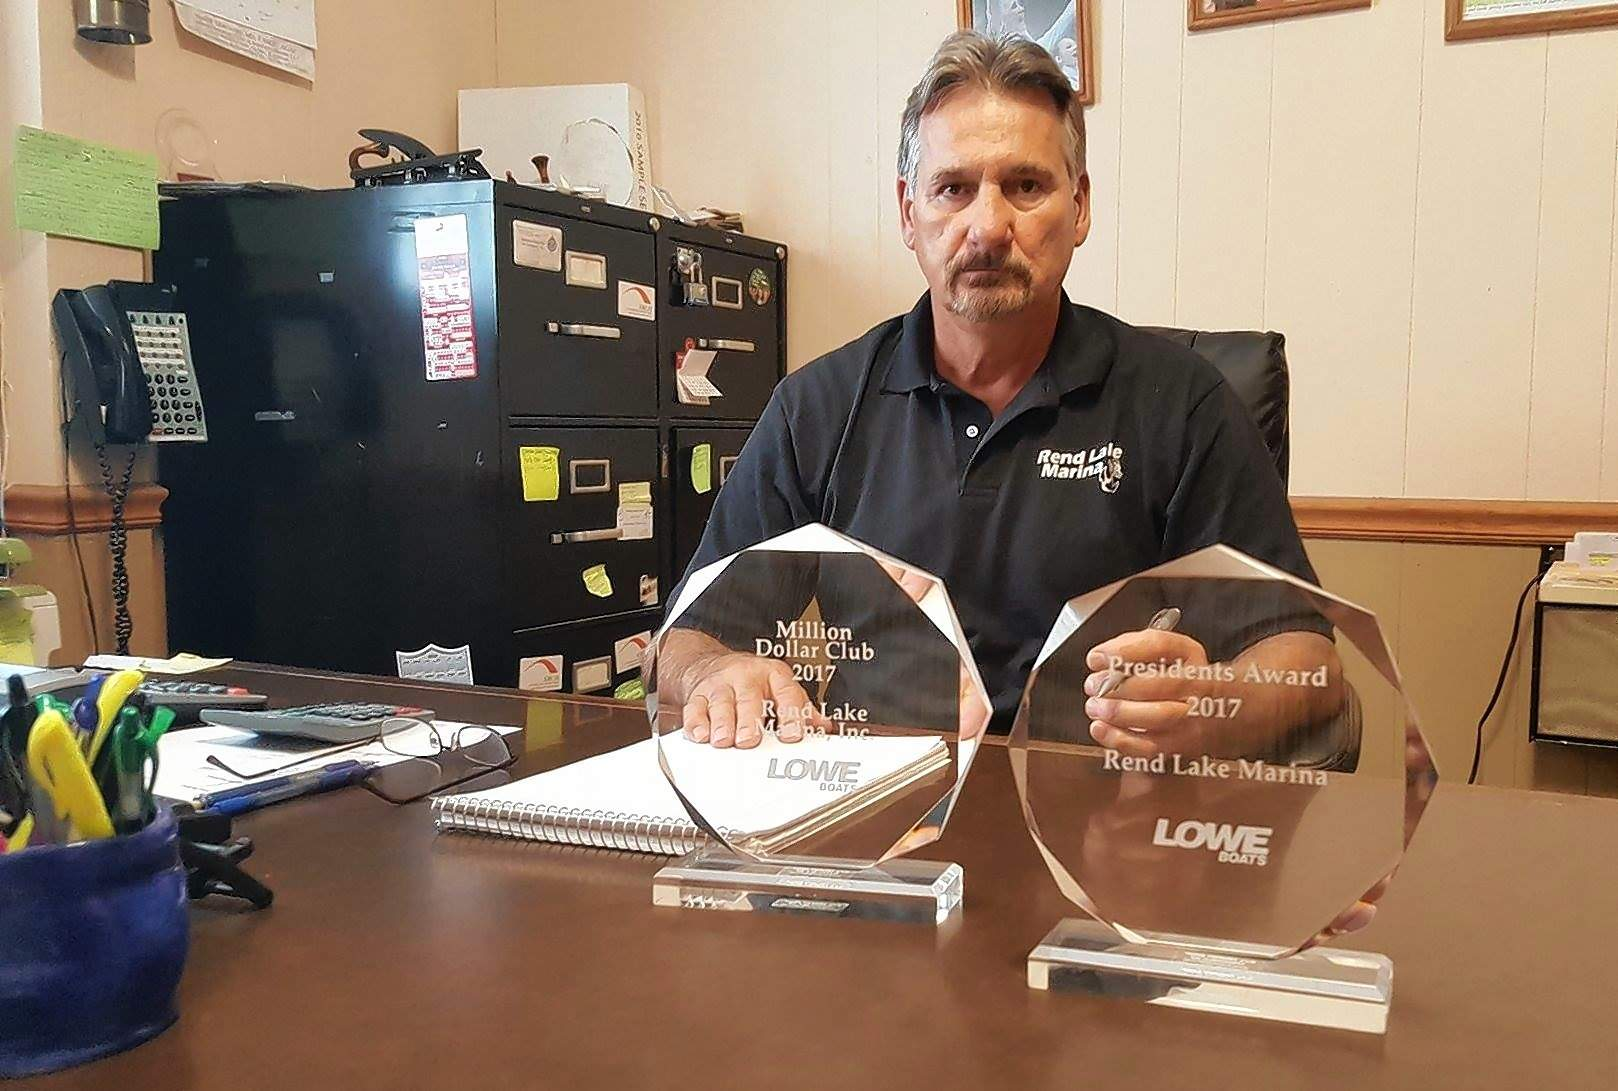 Steve Vercellino brought home the hardware from a recent convention honoring the sales and service at Rend Lake Marina near Benton.